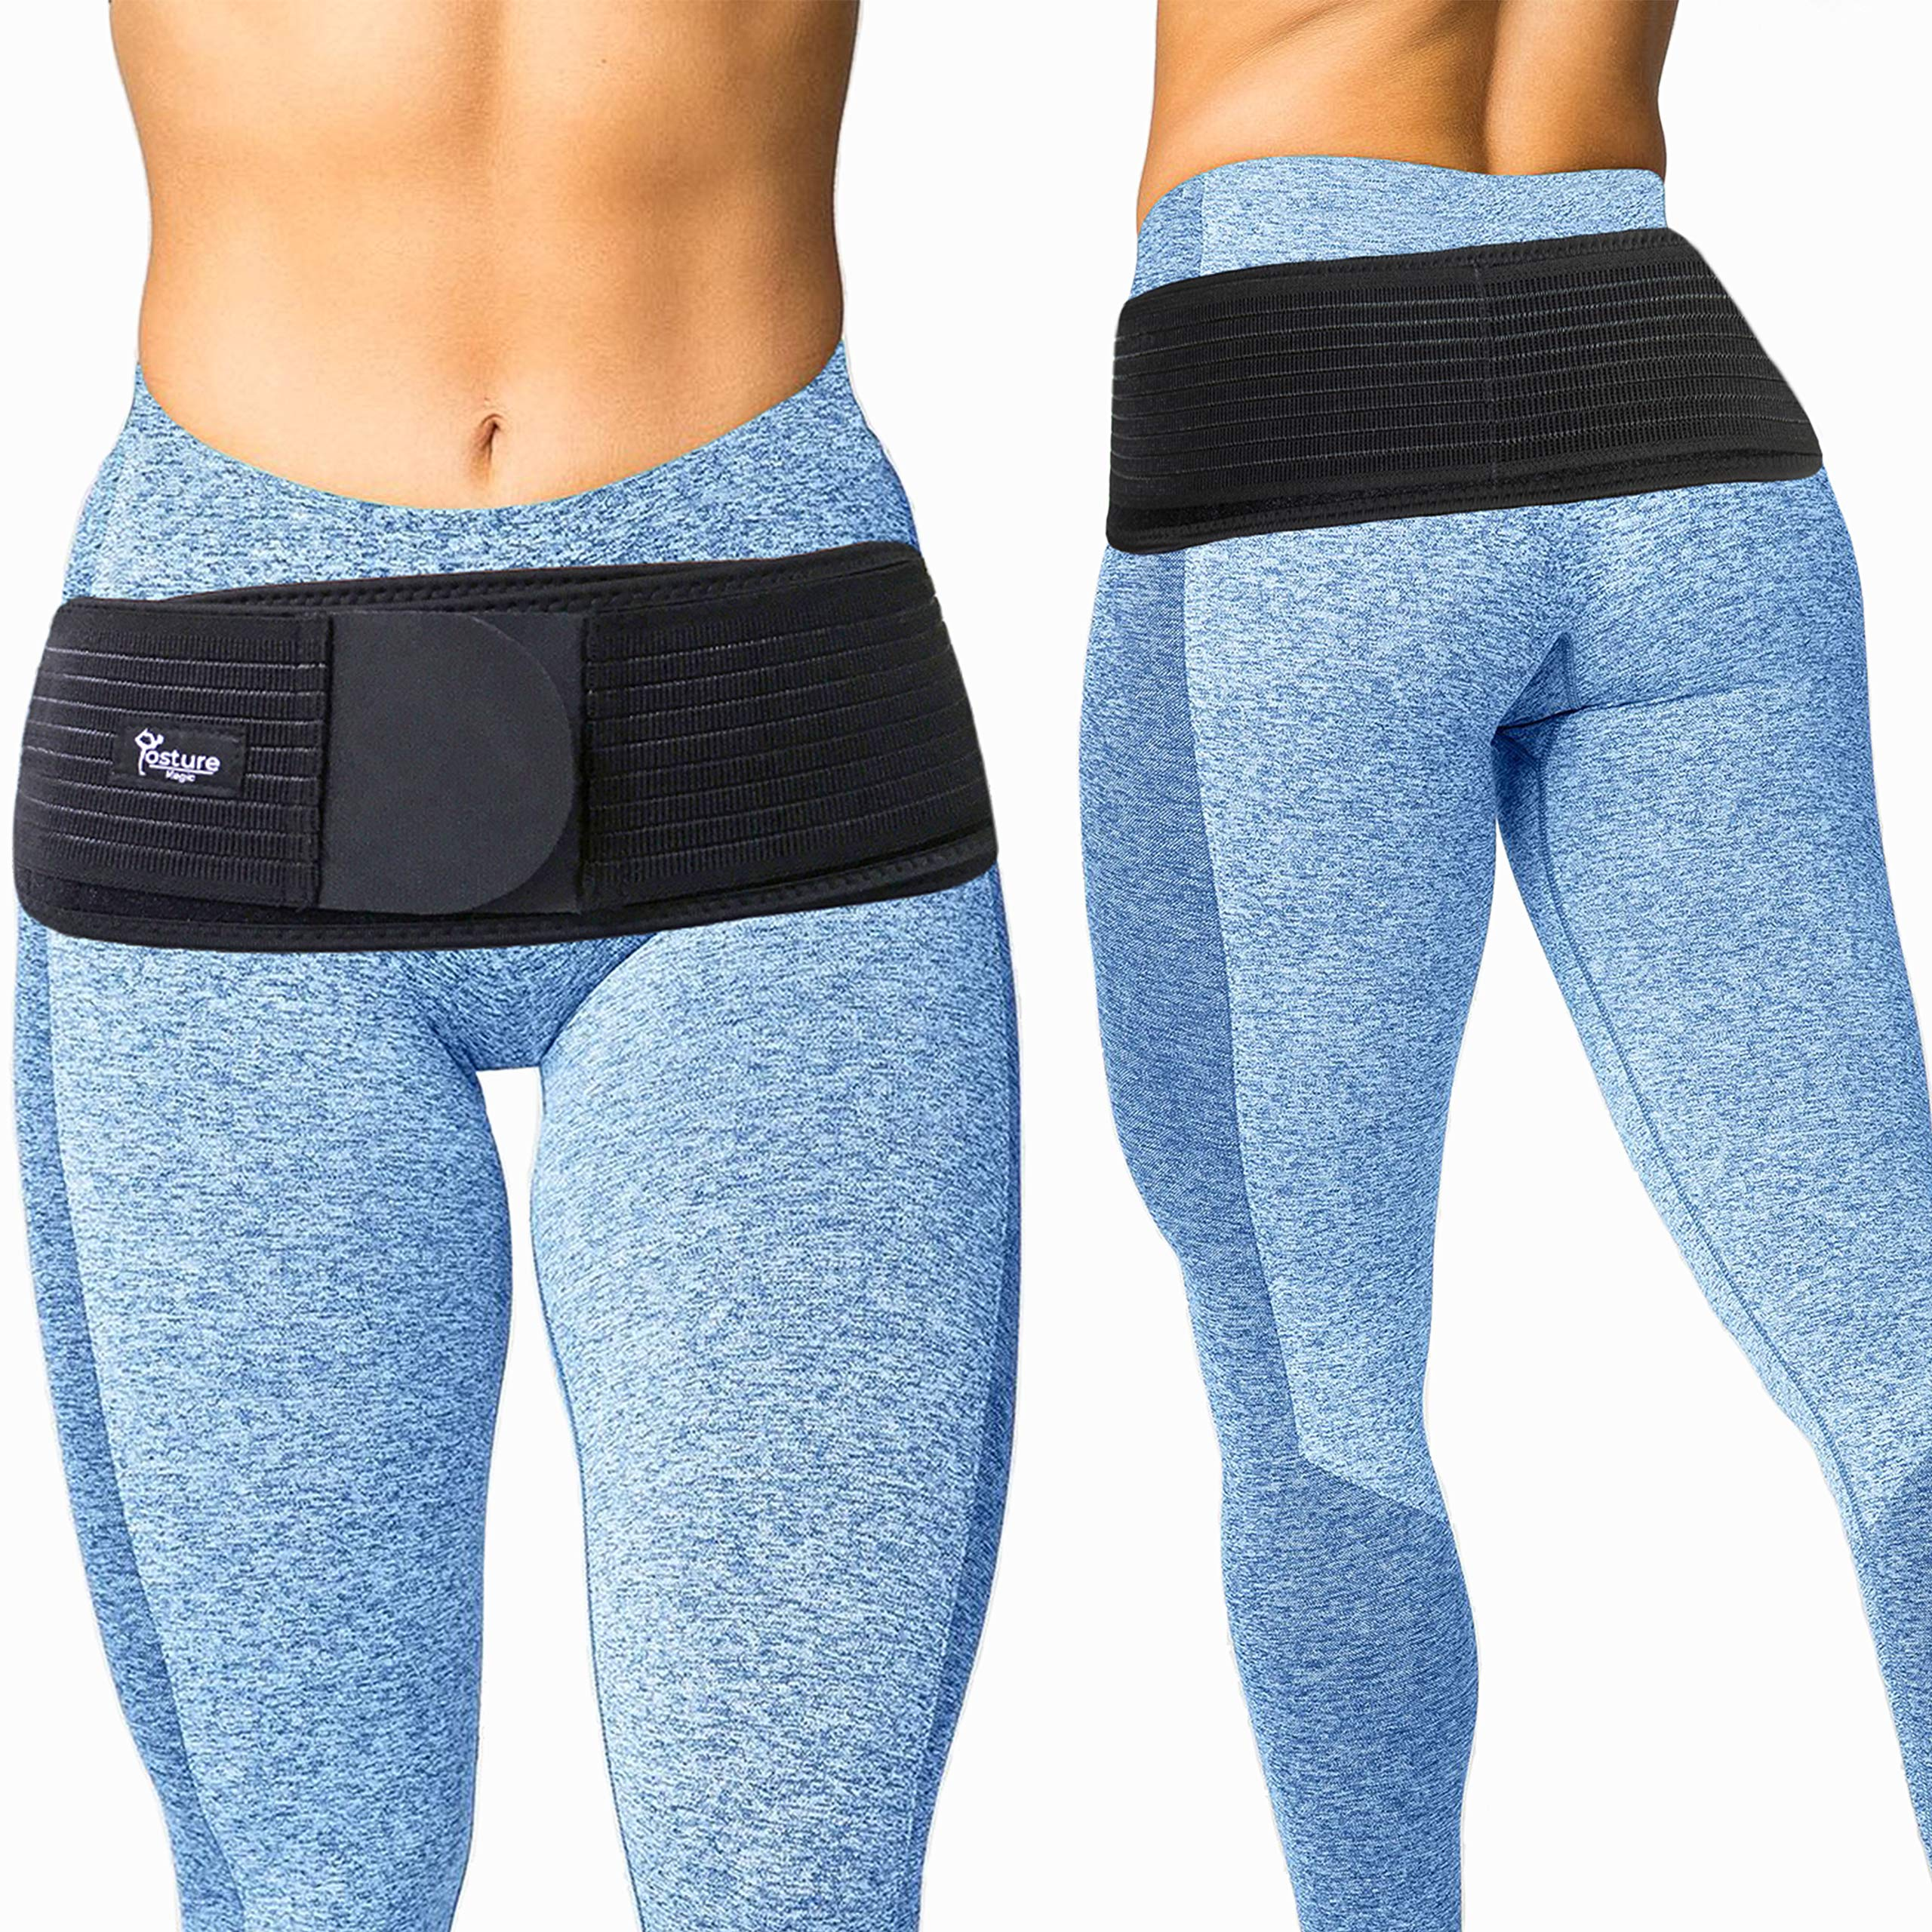 Posture Magic Sacroiliac SI Joint Support Belt for Women and Men - Reduce Sciatic, Pelvic, Lower Back and Leg Pain - Stabilize SI Joint - Hip Size Up to 45''